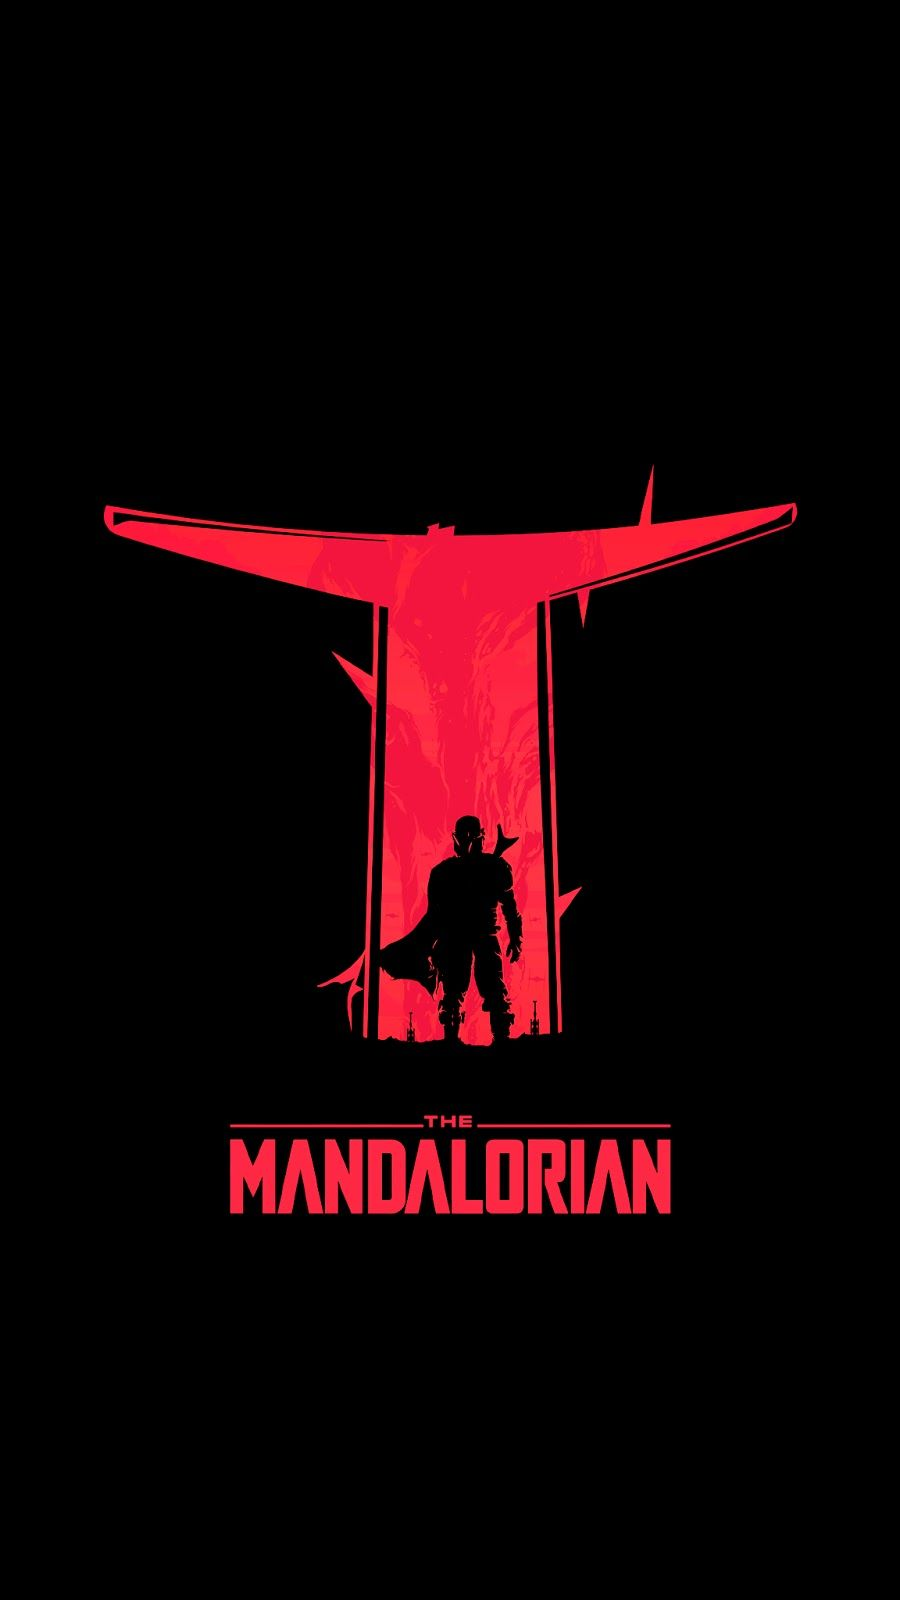 The Mandalorian phone wallpapers in 2020 Star wars